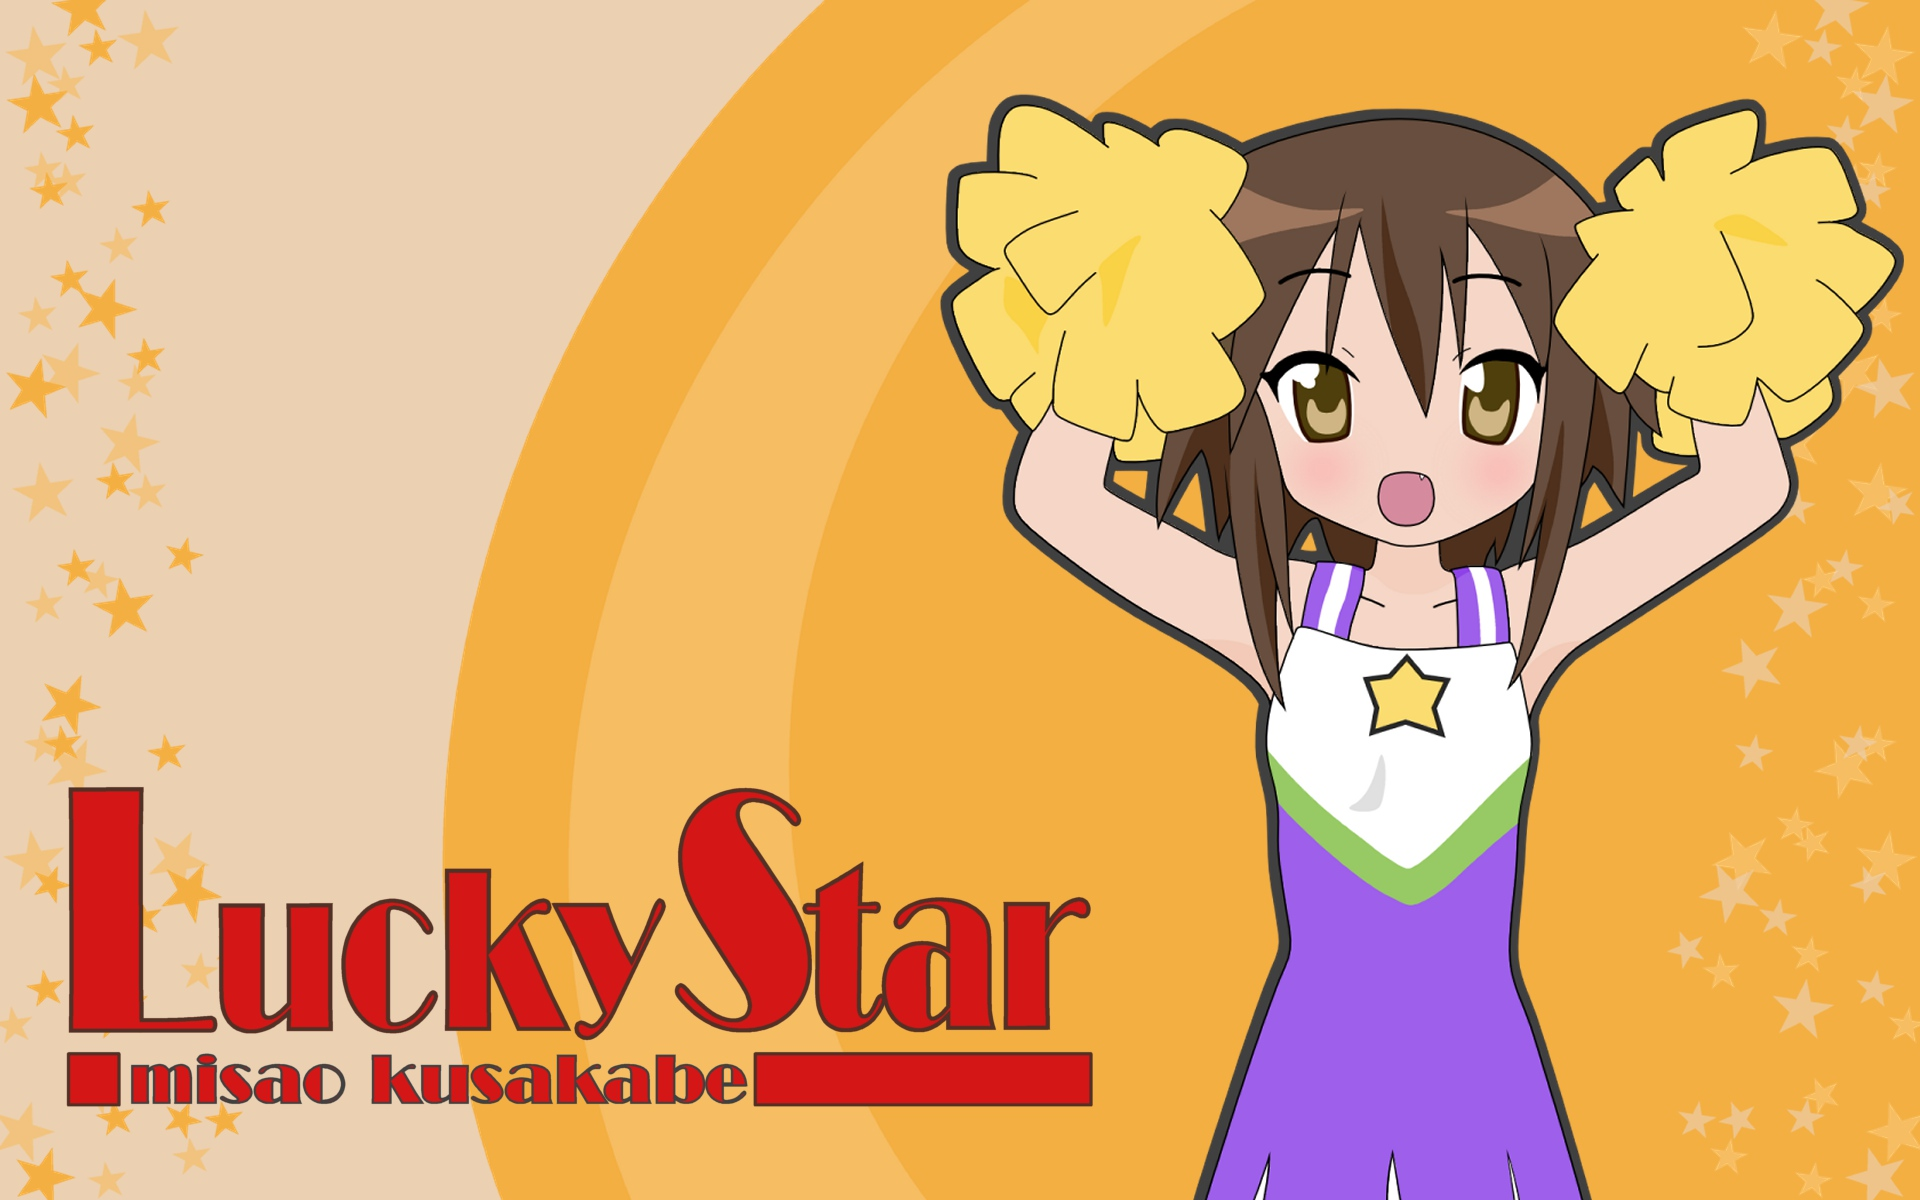 cheerleader kusakabe_misao lucky_star